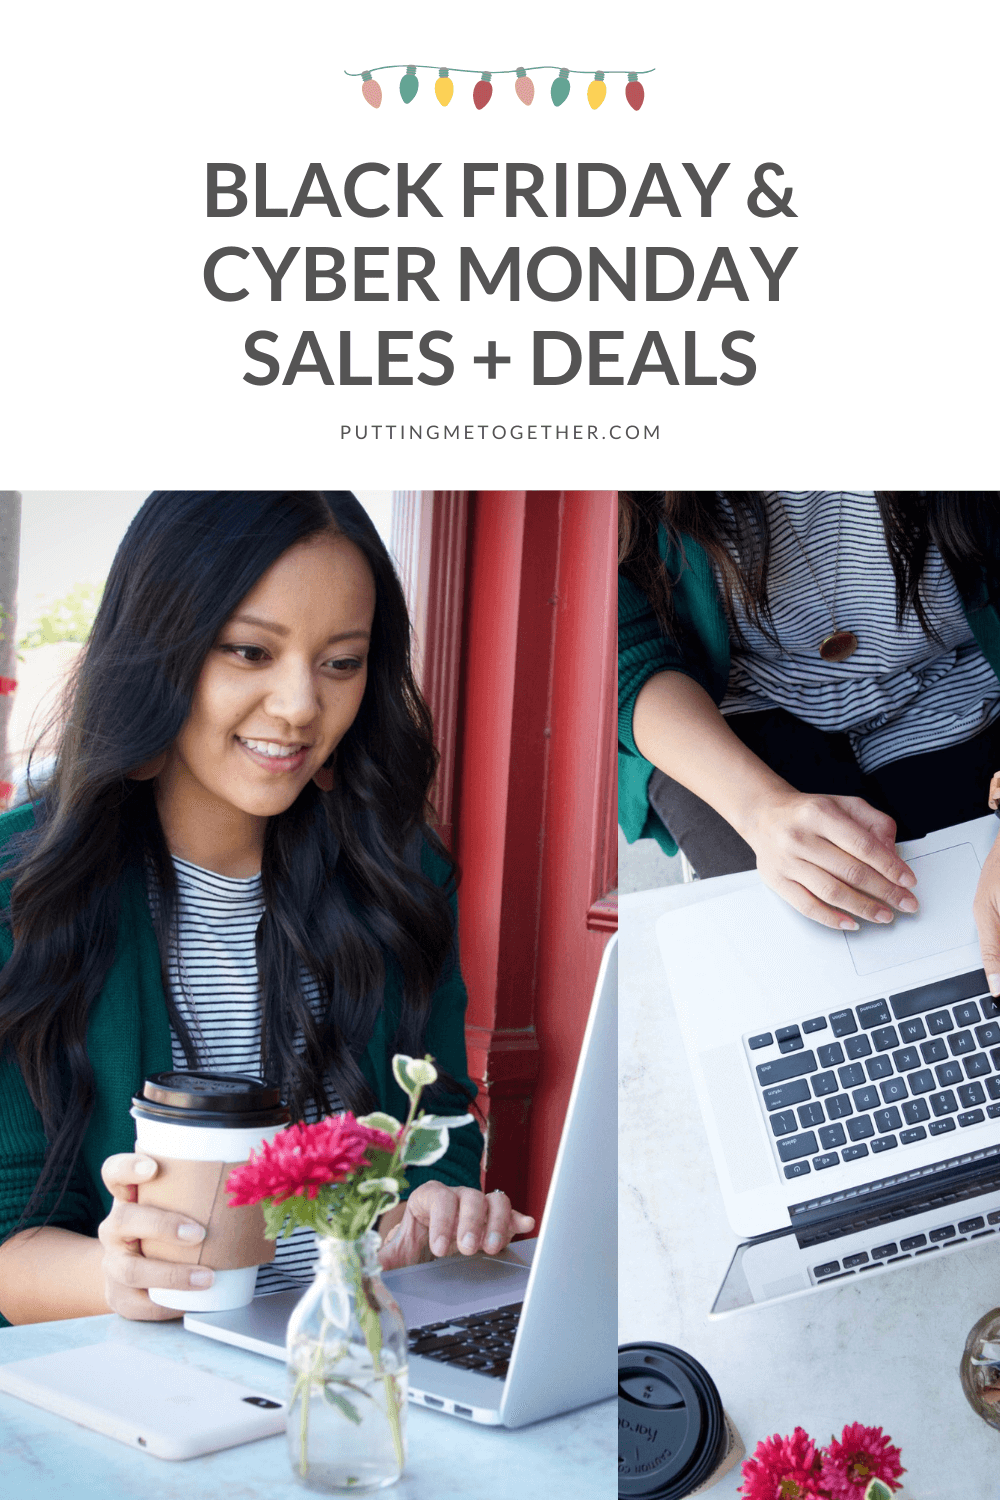 Black Friday & Cyber Monday Deals Roundup 2020